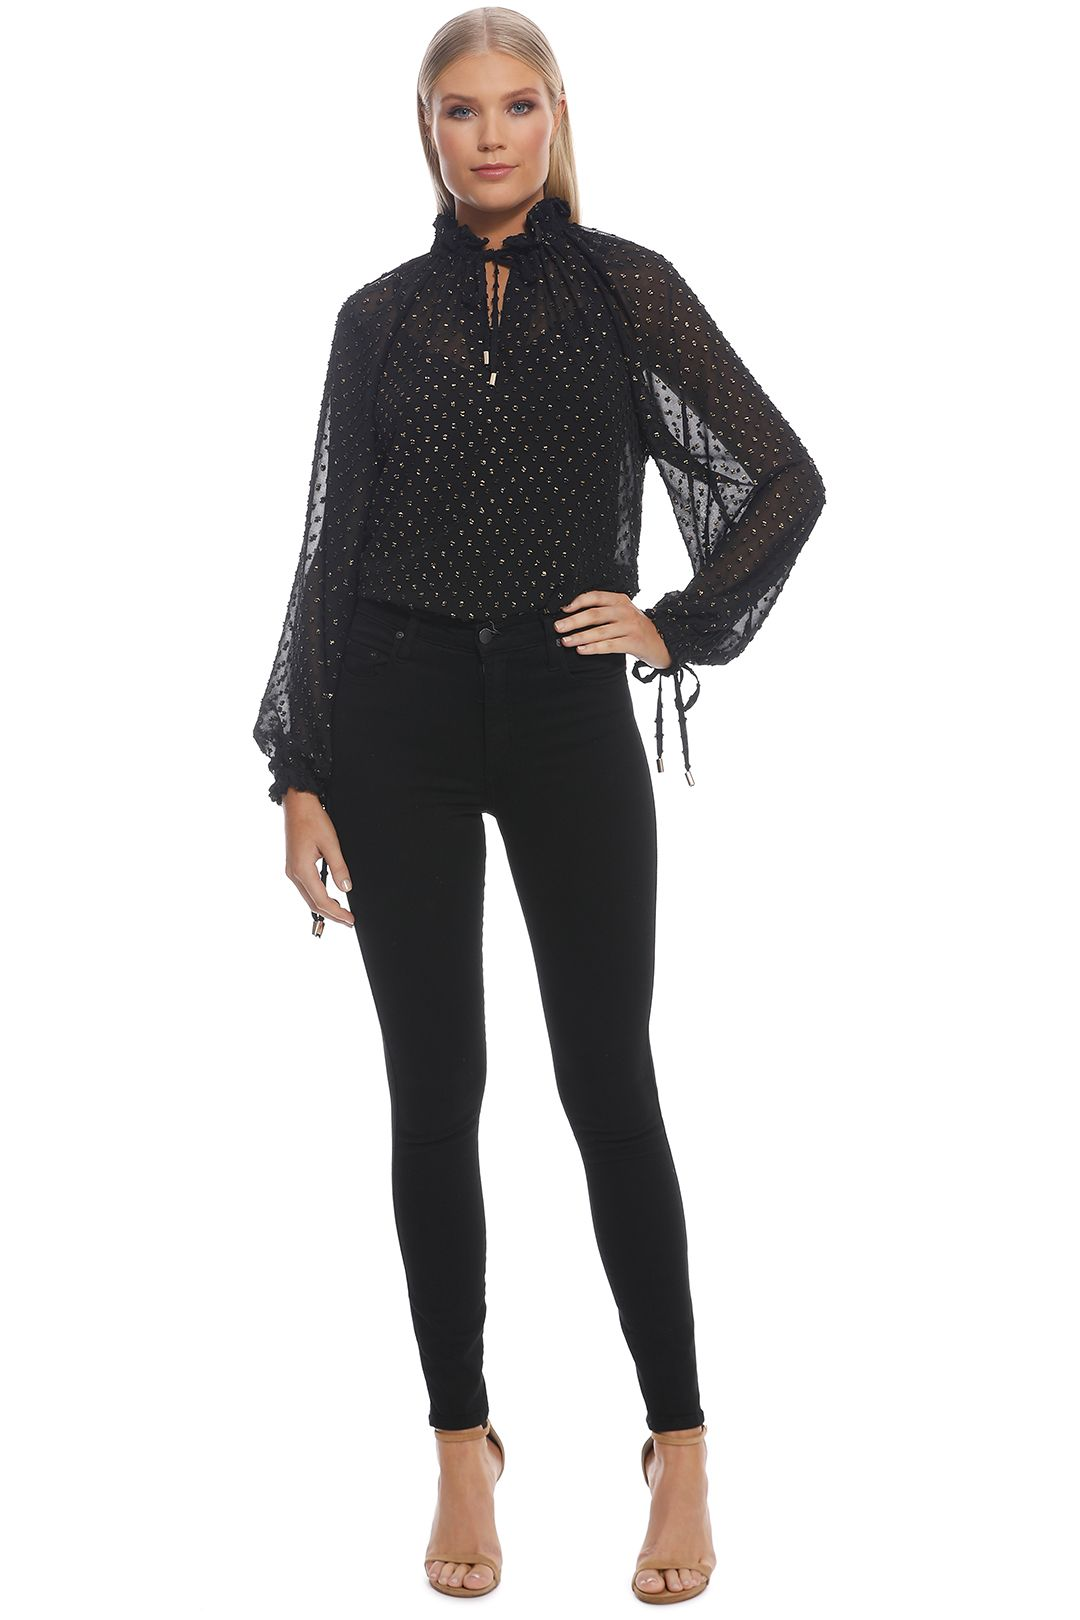 Ministry of Style - Augustine Top - Black - Front